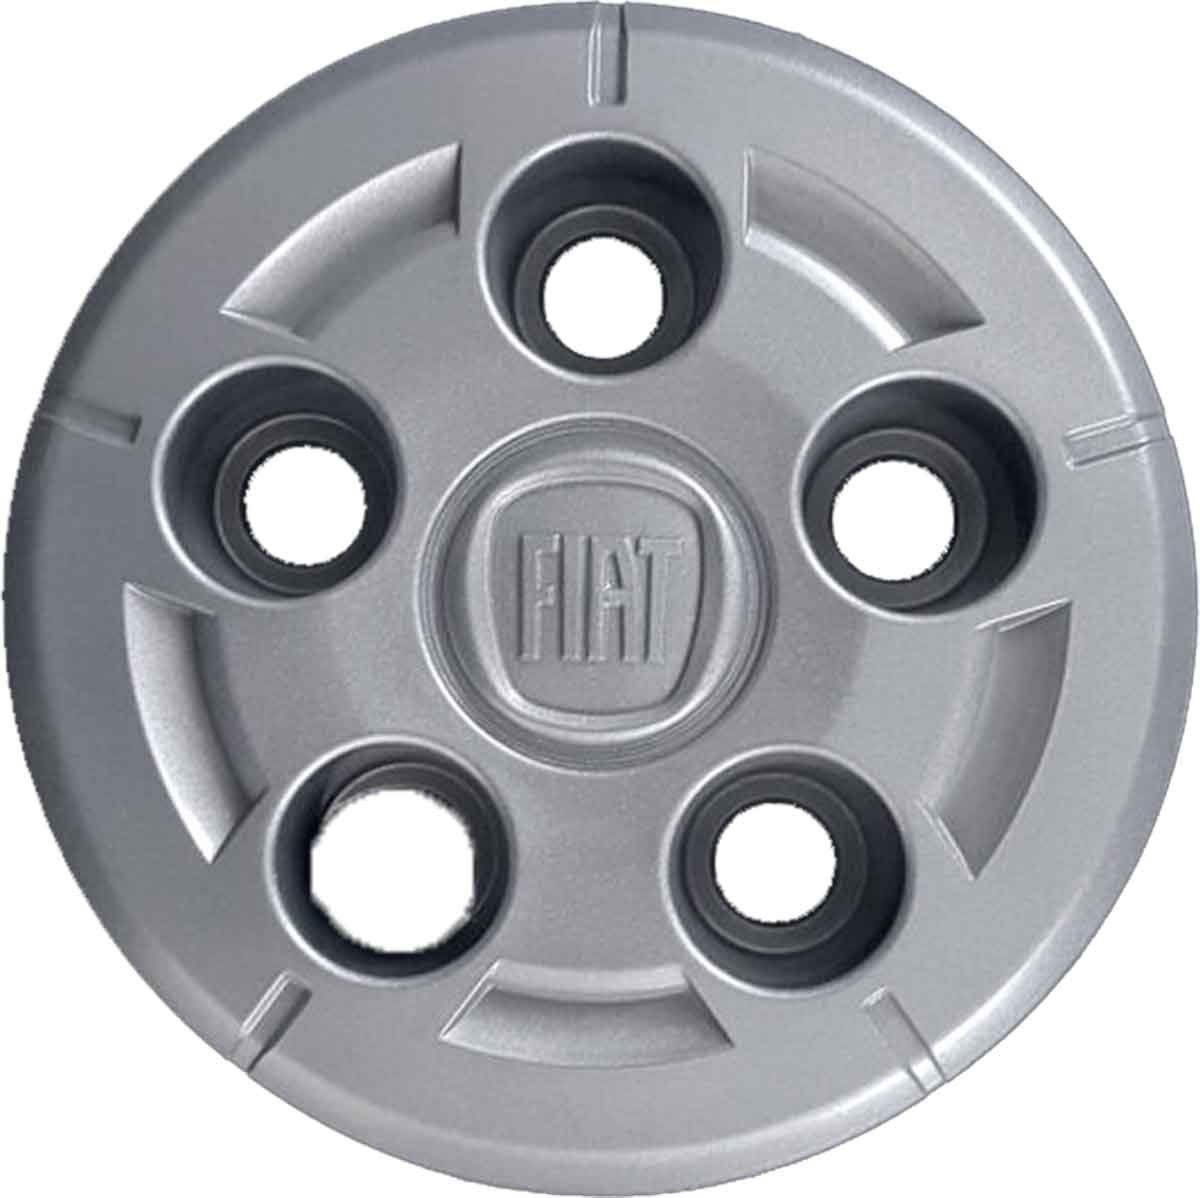 Wheel trim cover cup 9 Ducato 2006 Onwards Not Original Aftermarket